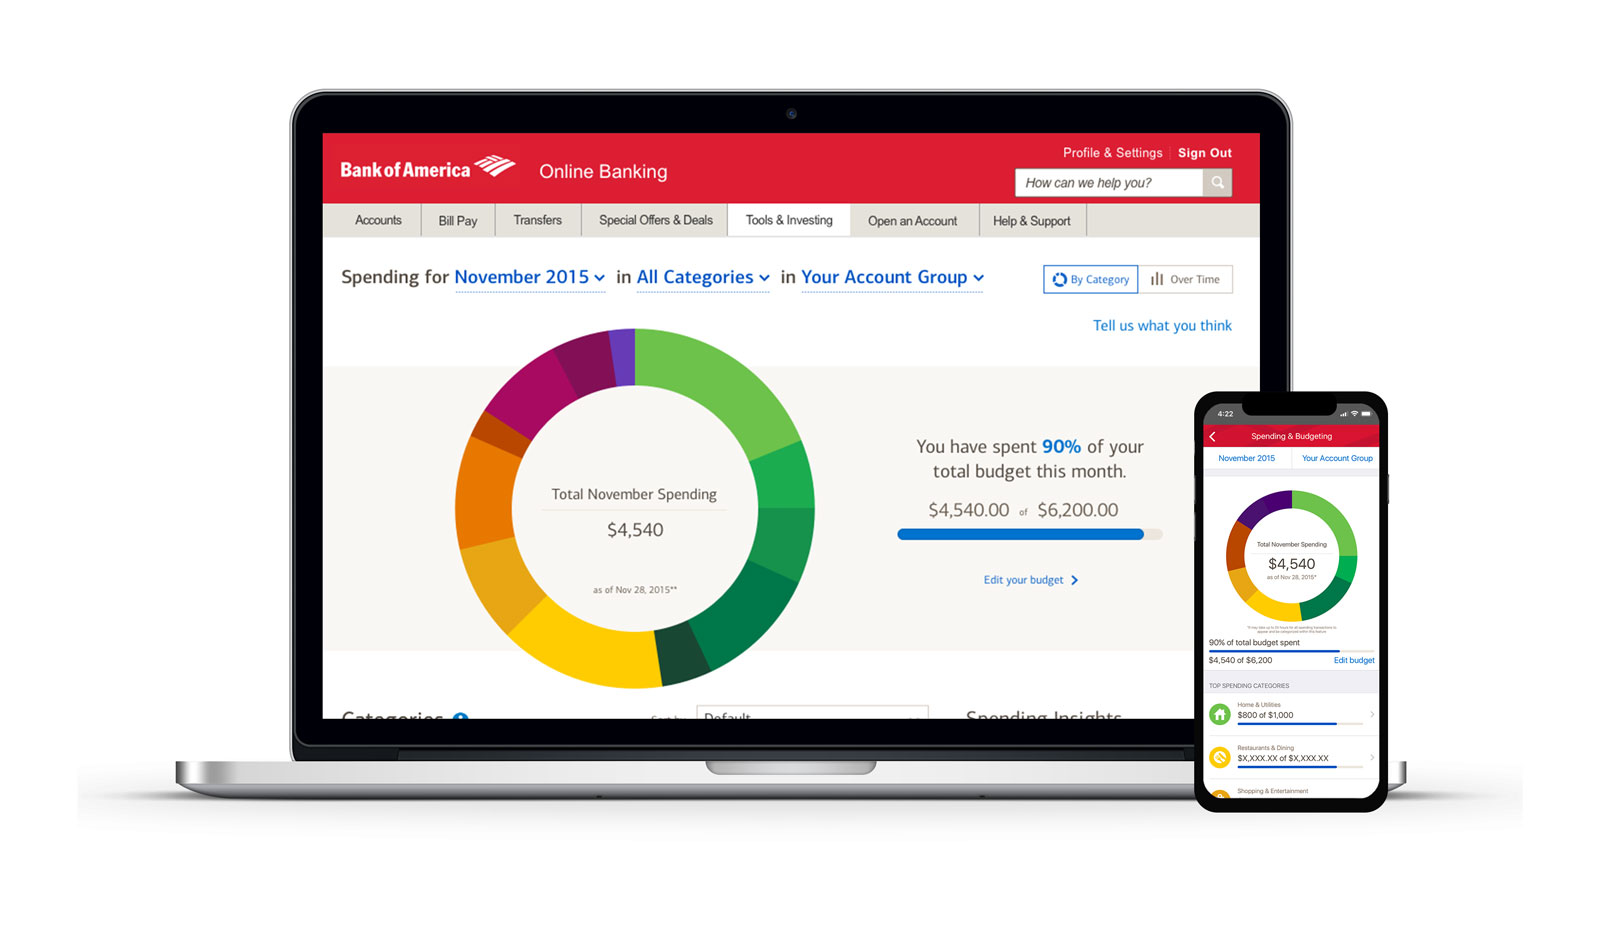 Bank of America Spending & Budgeting work sample; Budgeting dashboard with expenses and expense categories listed on desktop, and iPhone